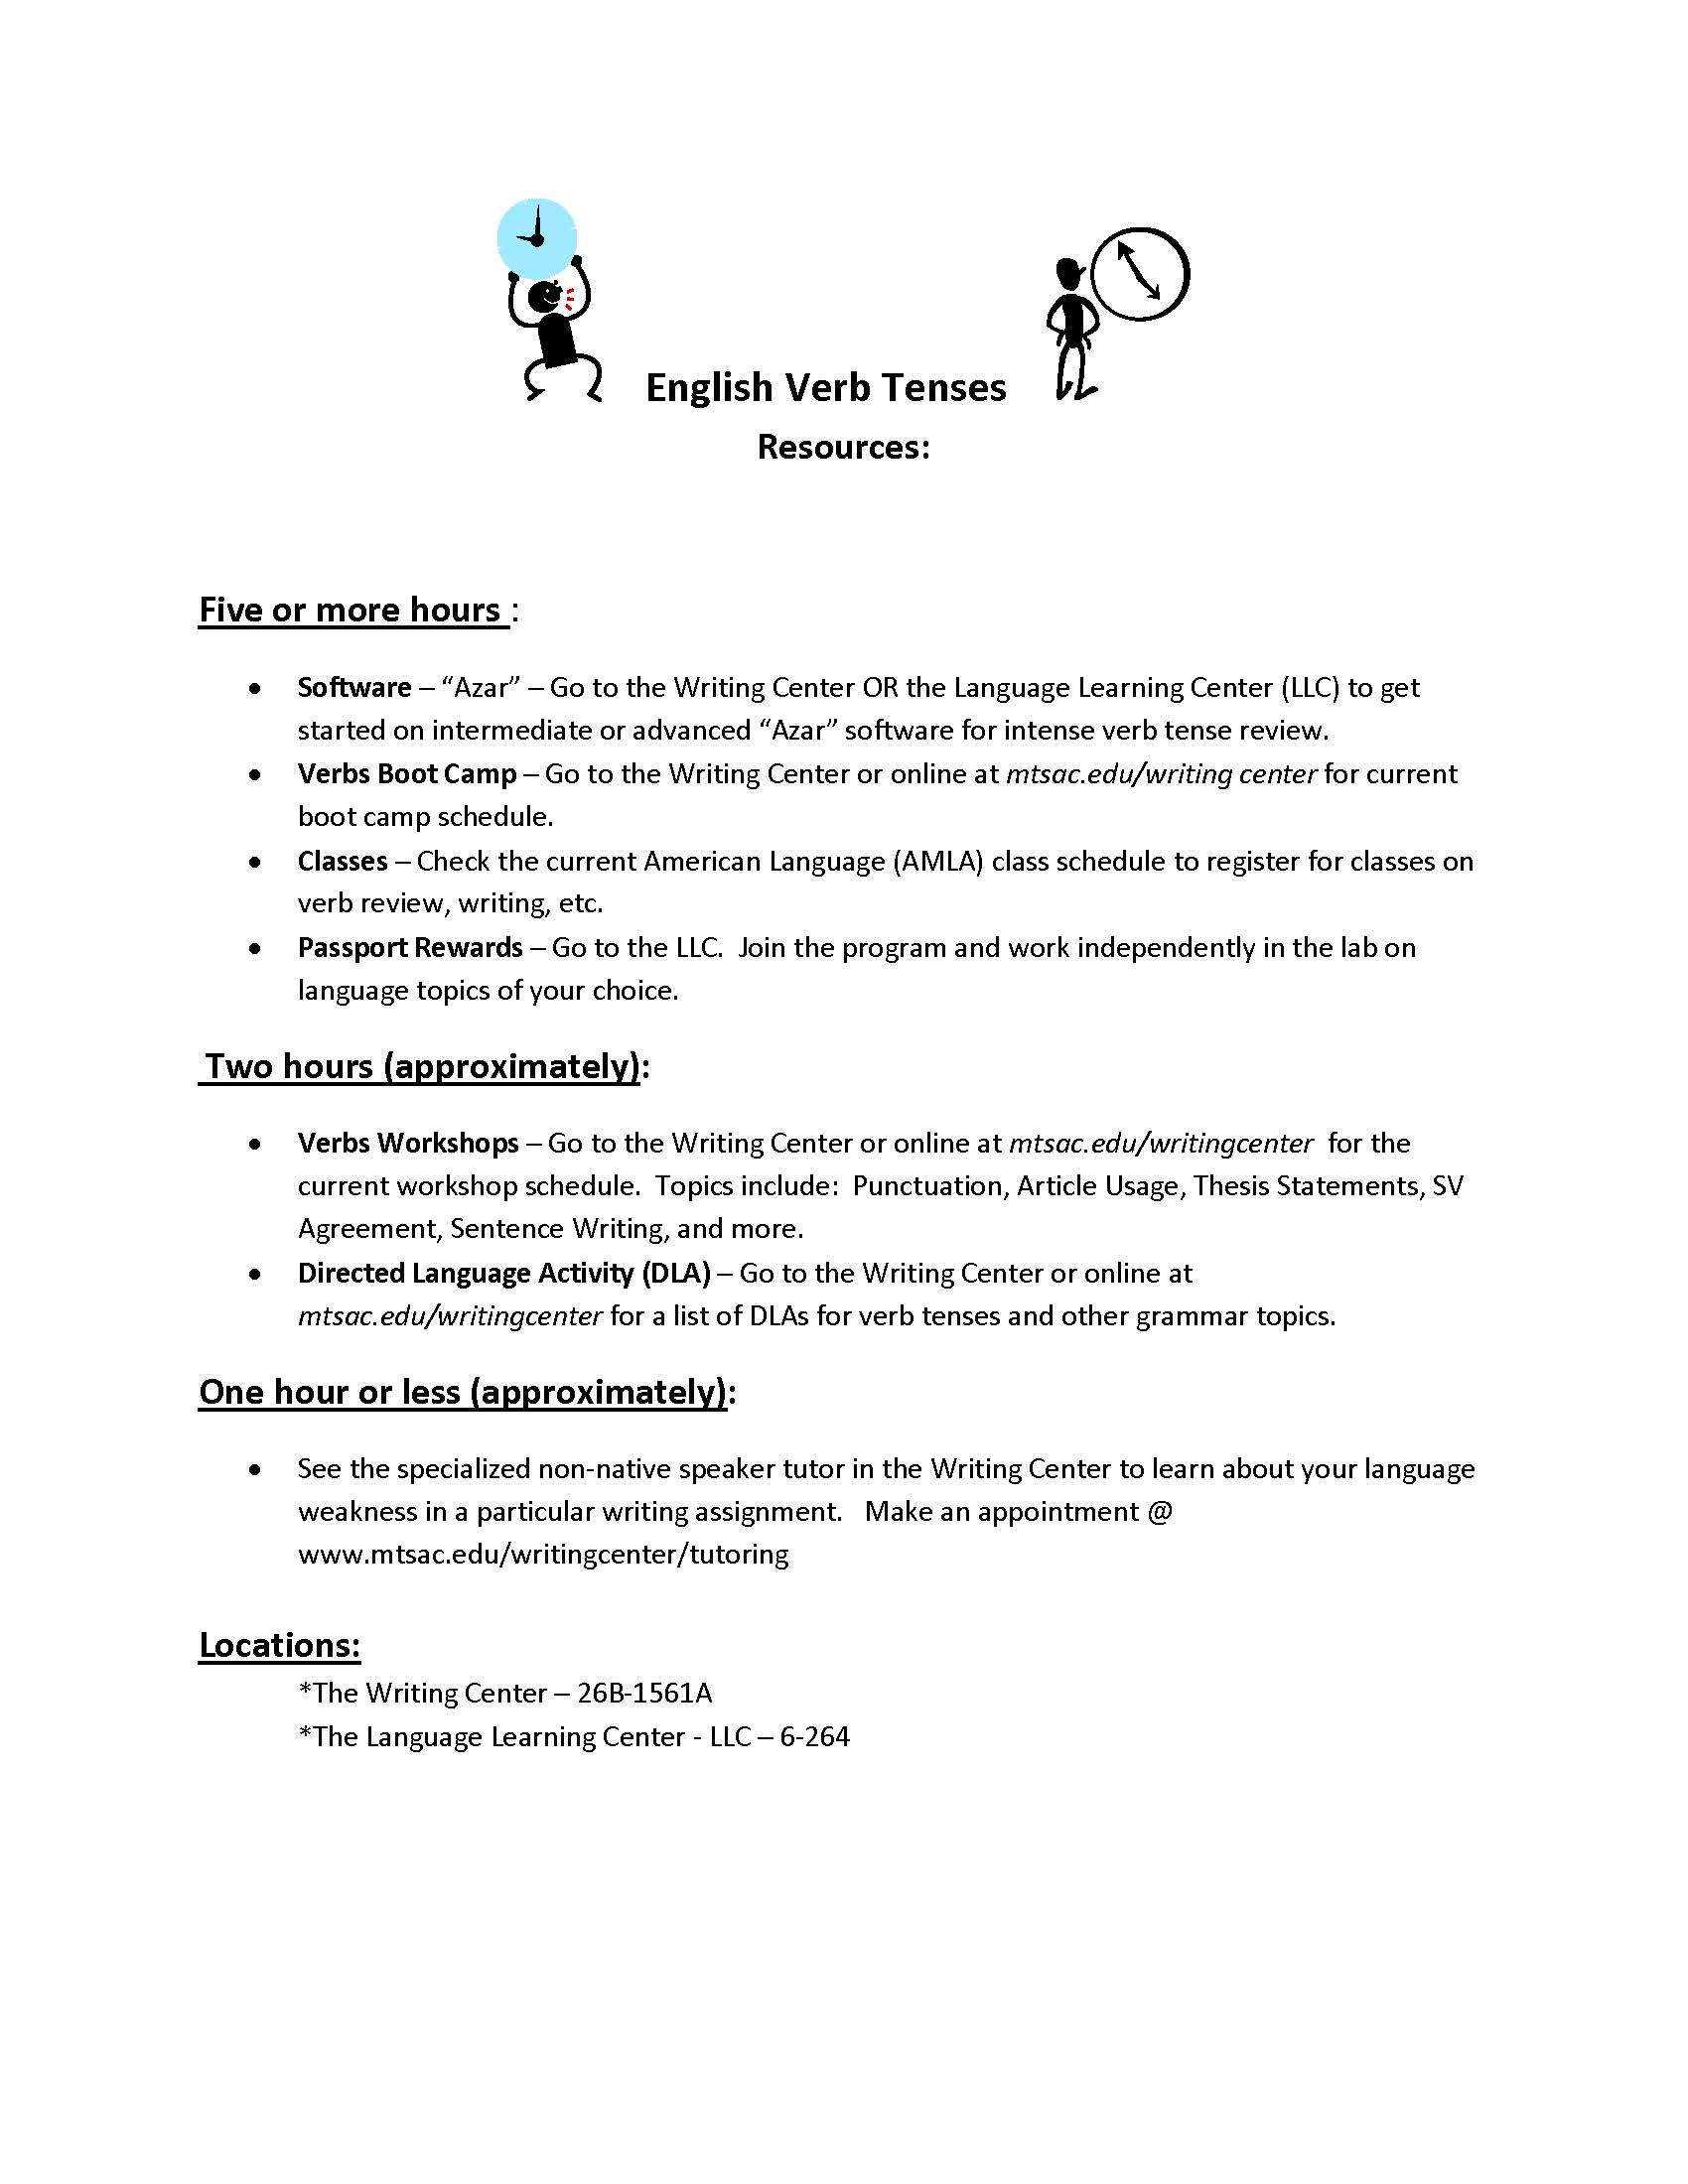 English Verb Tenses Document